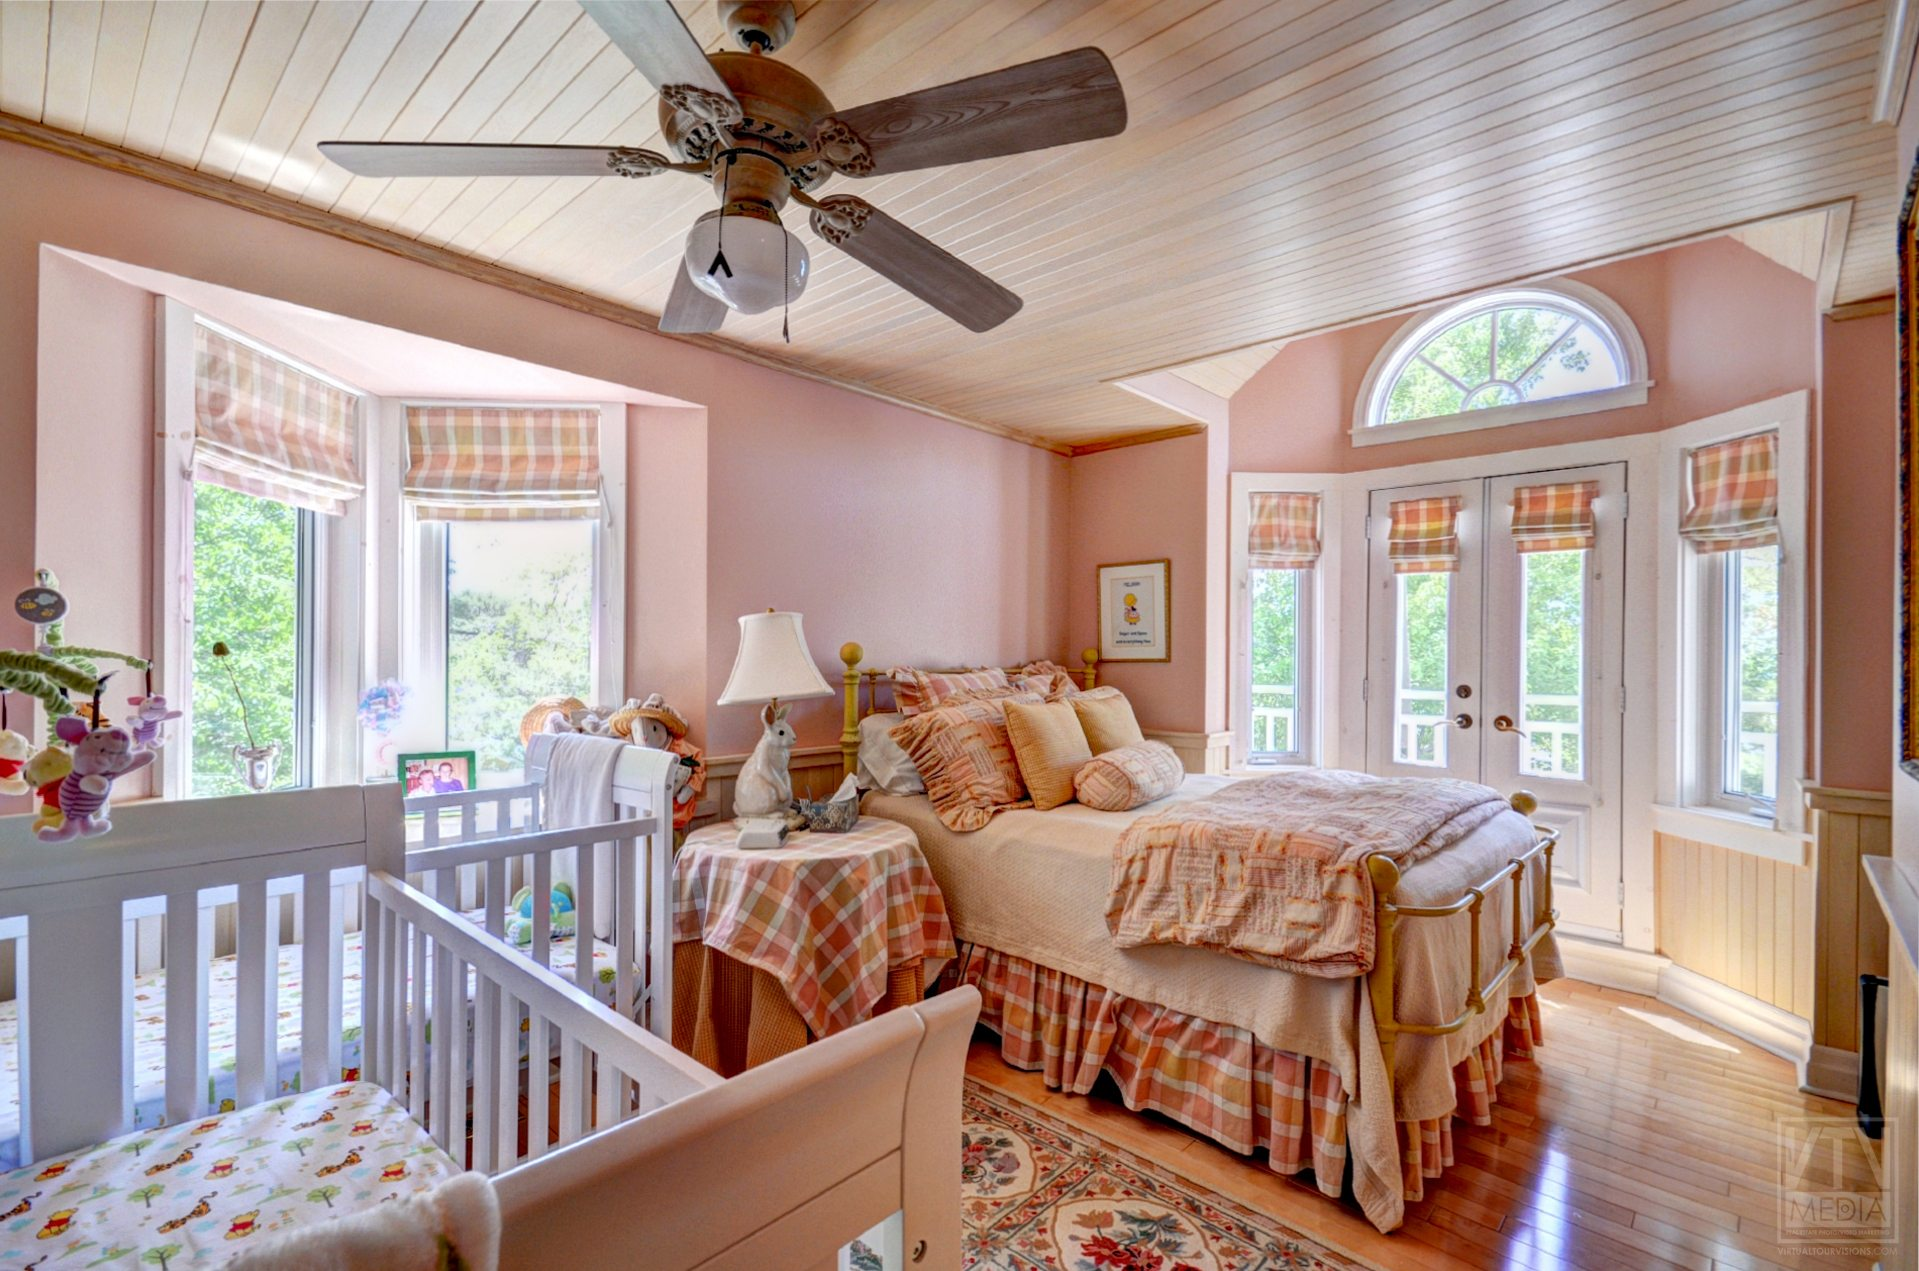 milford-bay-cottage-for-sale-1022-milford-manor-road-7